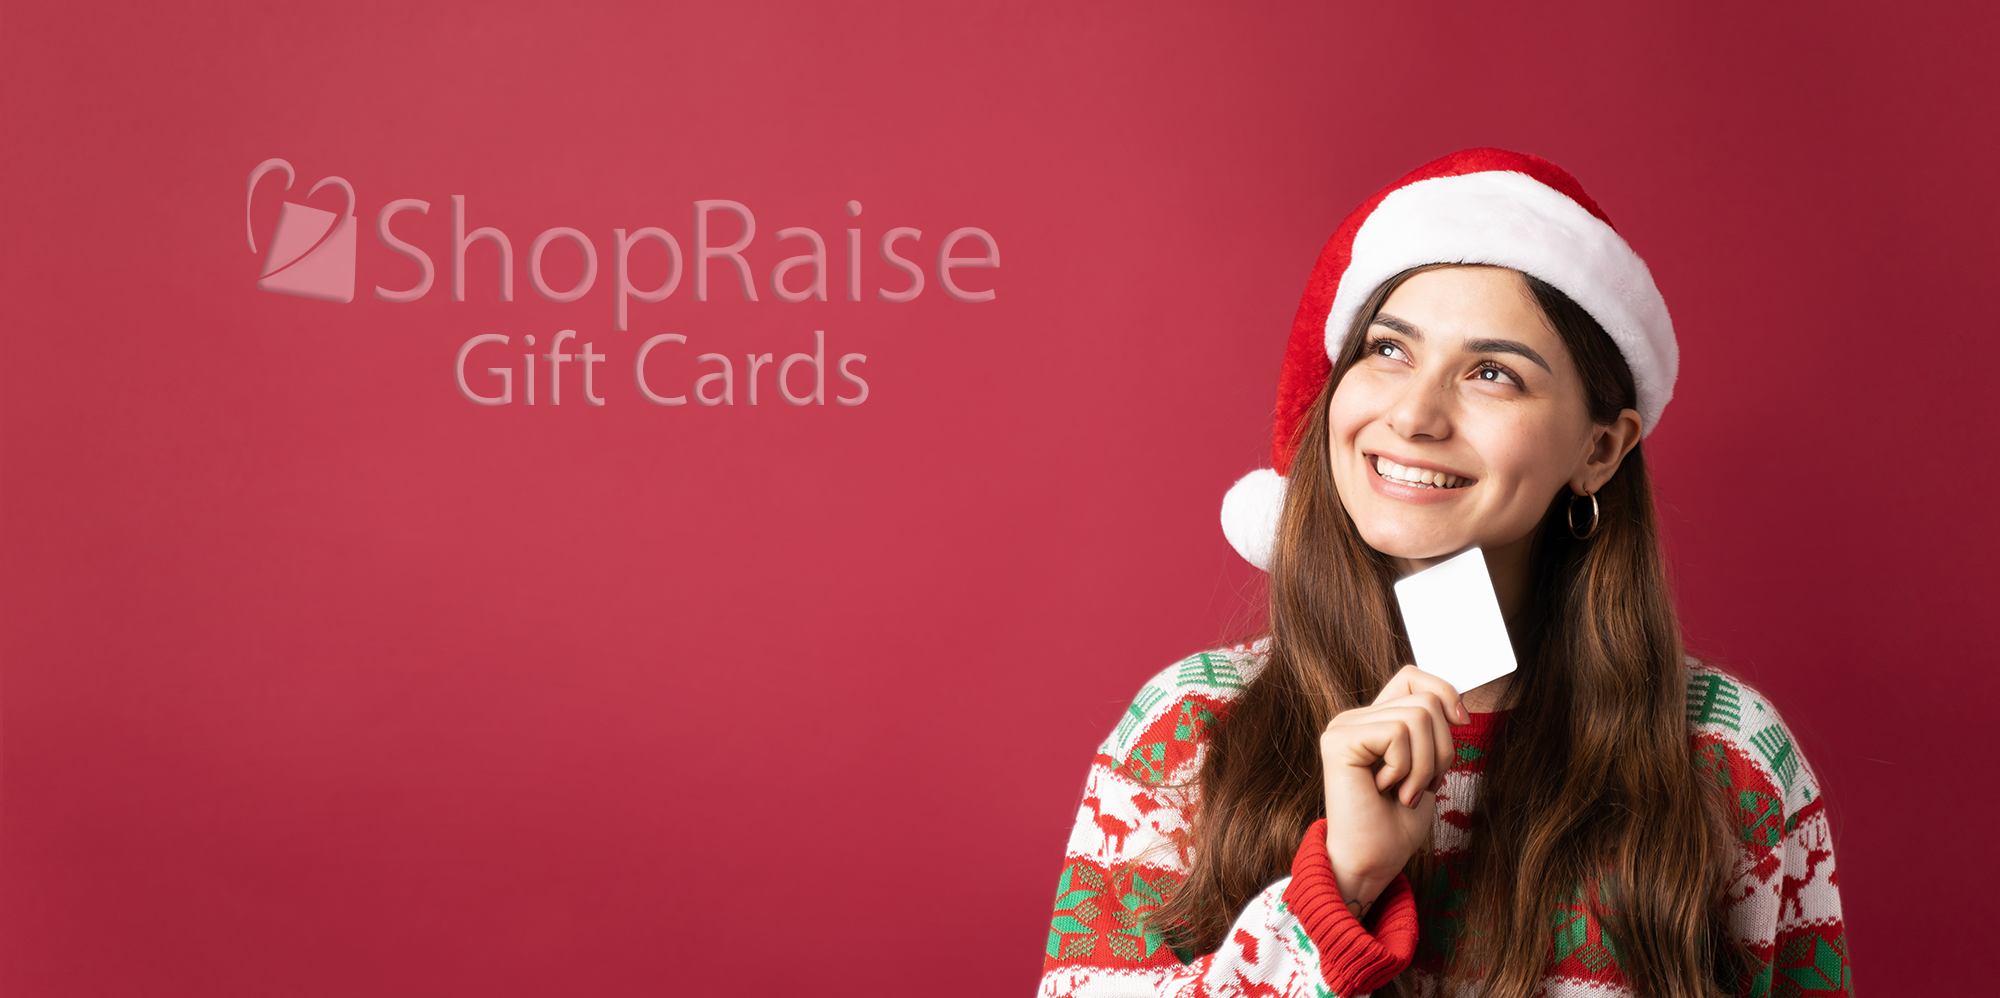 Gift card donations revamped